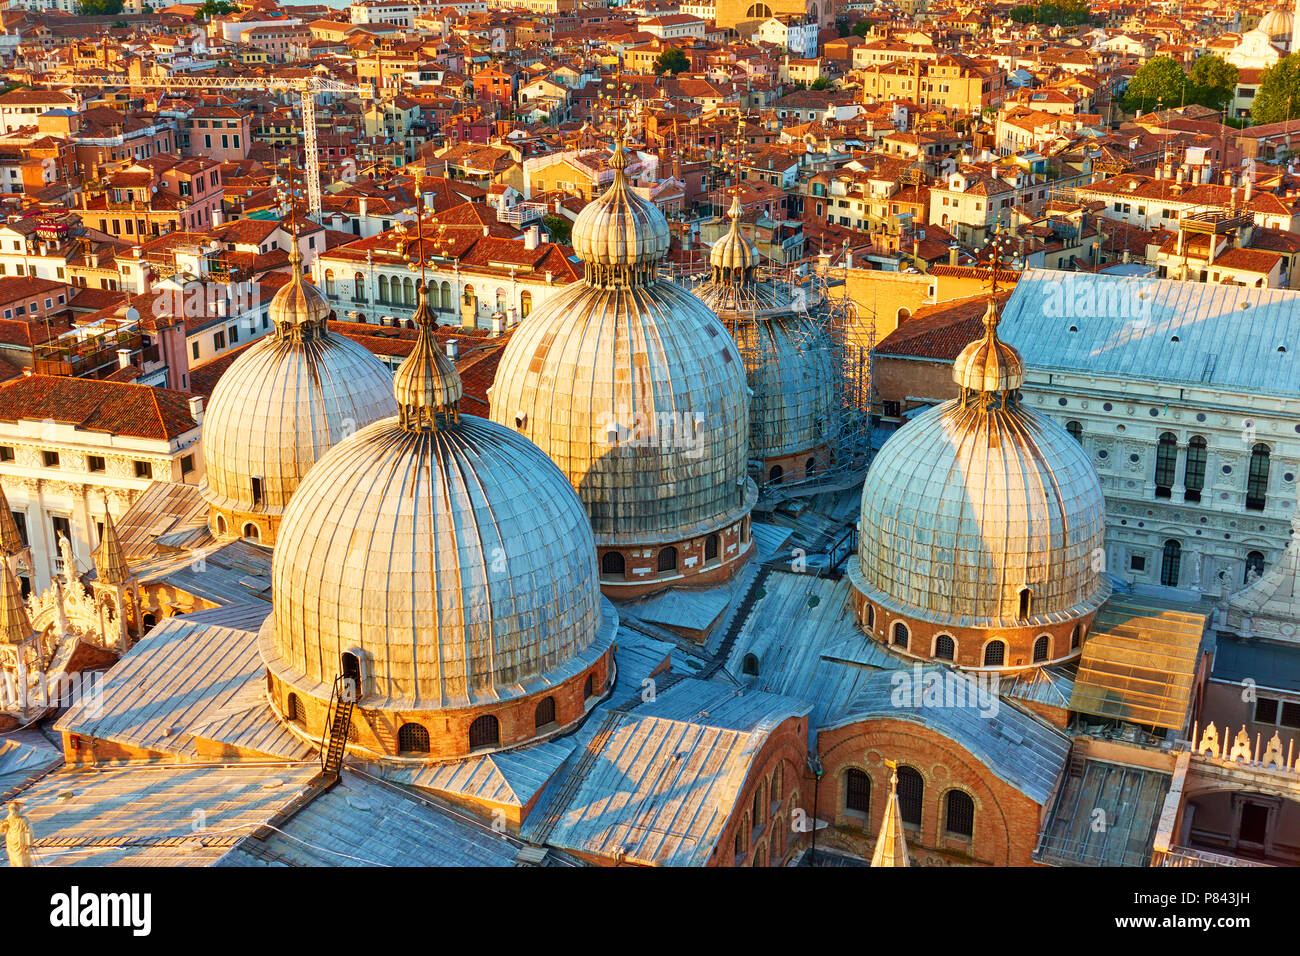 Domes of The Patriarchal Cathedral Basilica of Saint Mark in Venice in the early evening, Italy - Stock Image